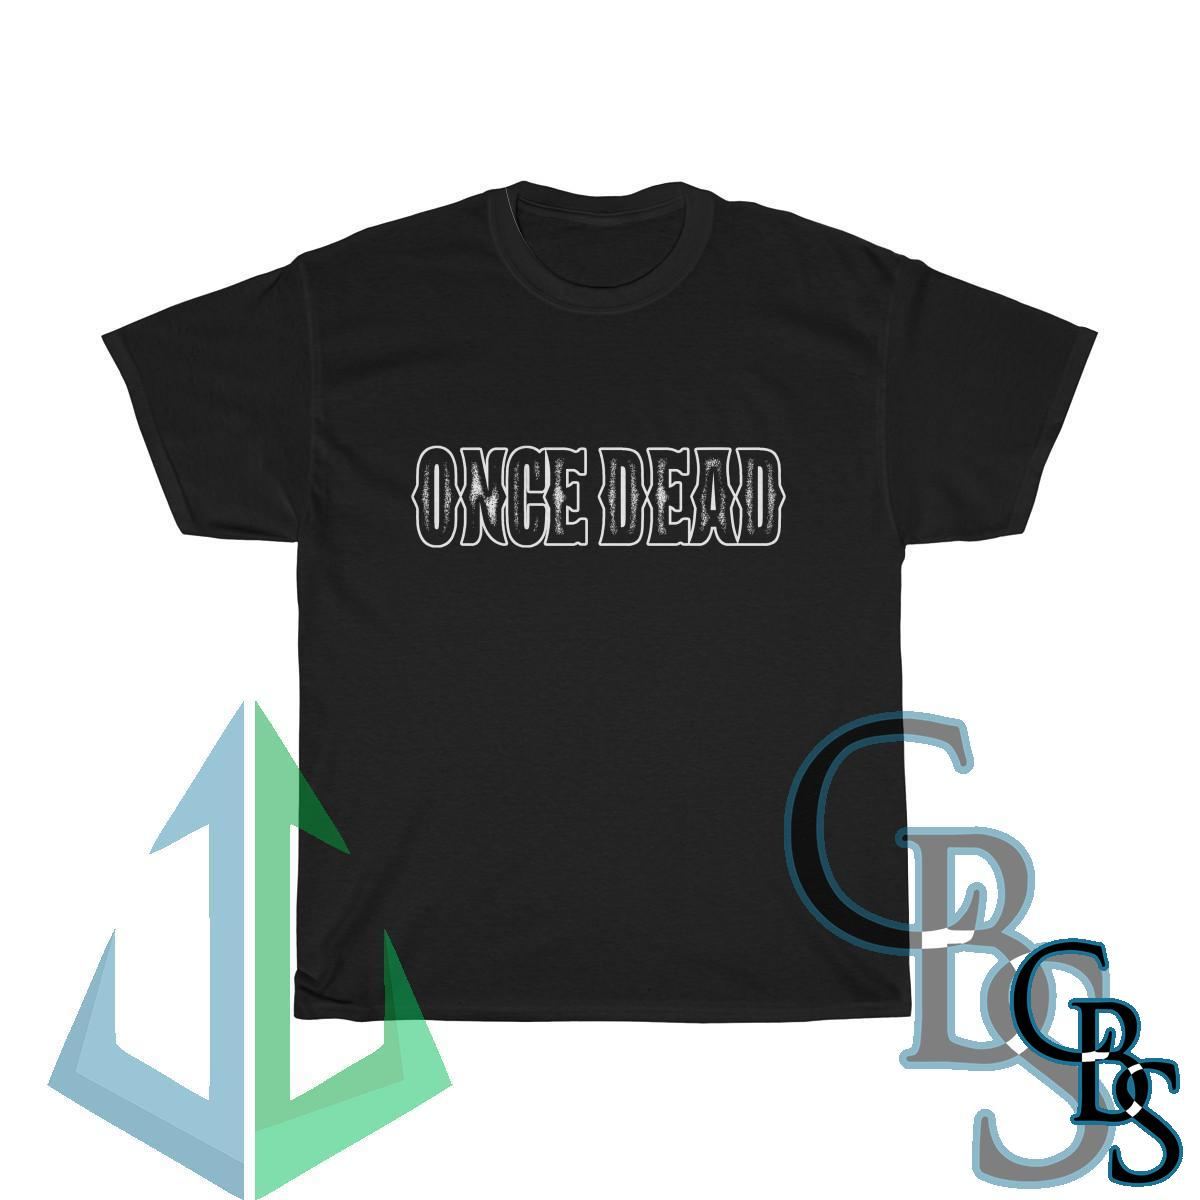 Once Dead Our Land Short Sleeve Tshirt